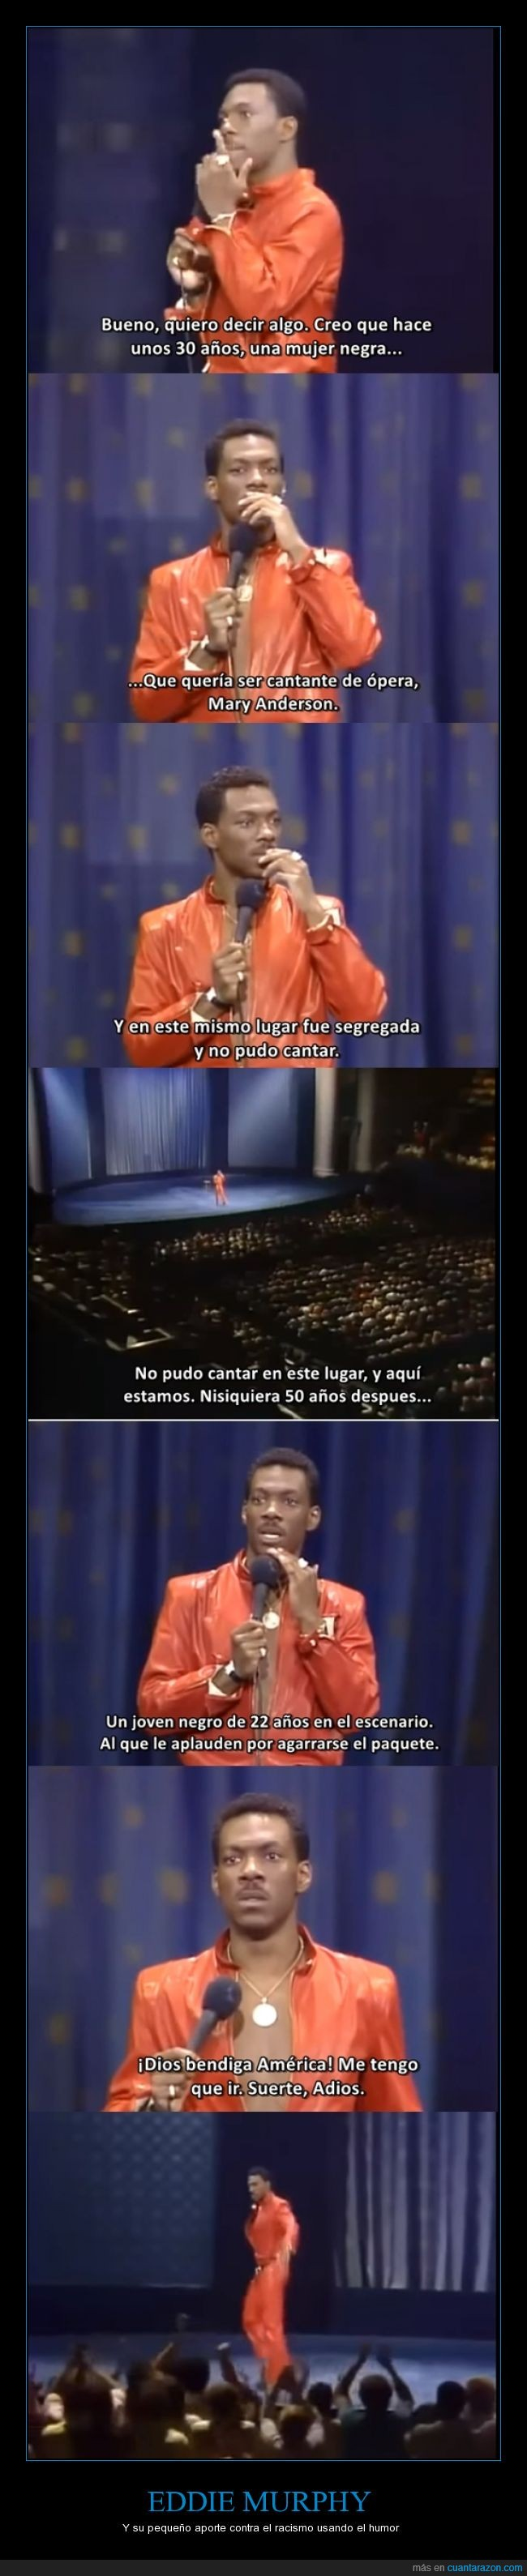 1982,america,delirious,eddie murphy,humor,Mary Anderson,Michael Jackson,racismo,stand up comedy